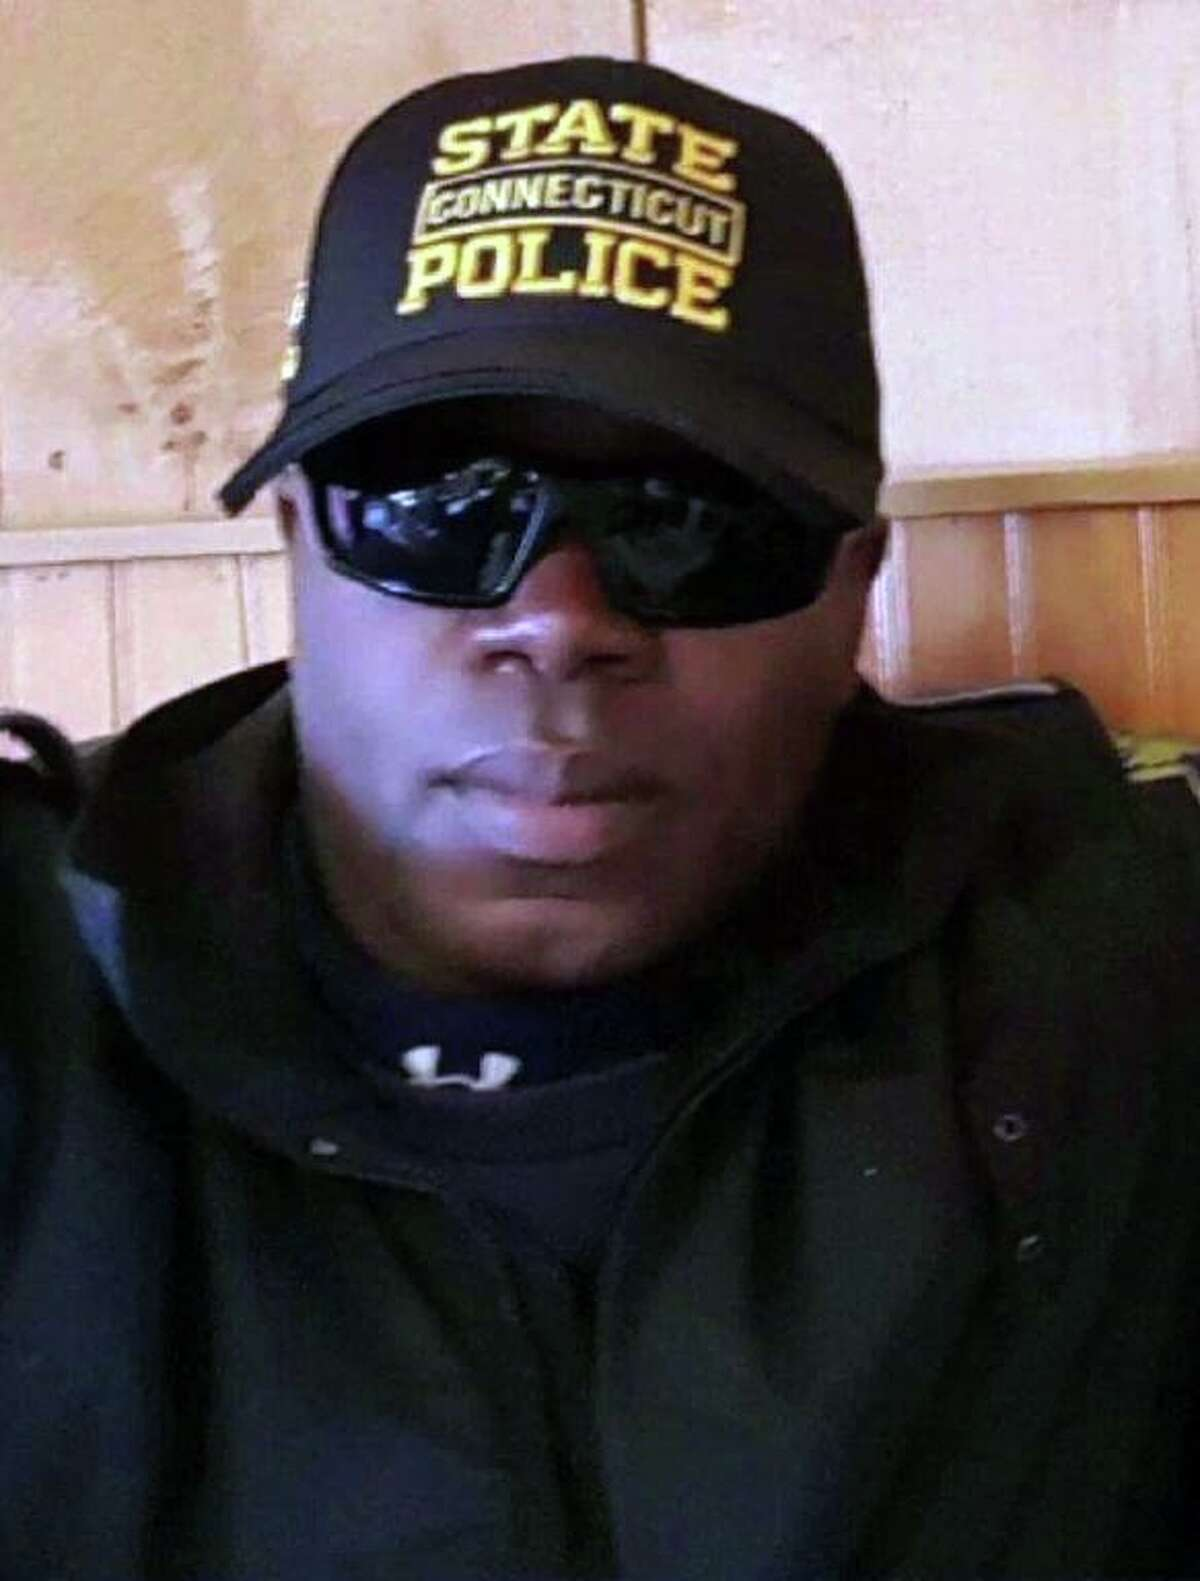 Trooper First Class Walter Greene Jr. died on May 31, 2018. He was 51. On Monday, May 31, 2021, state police took time to issue a statement in his memory.